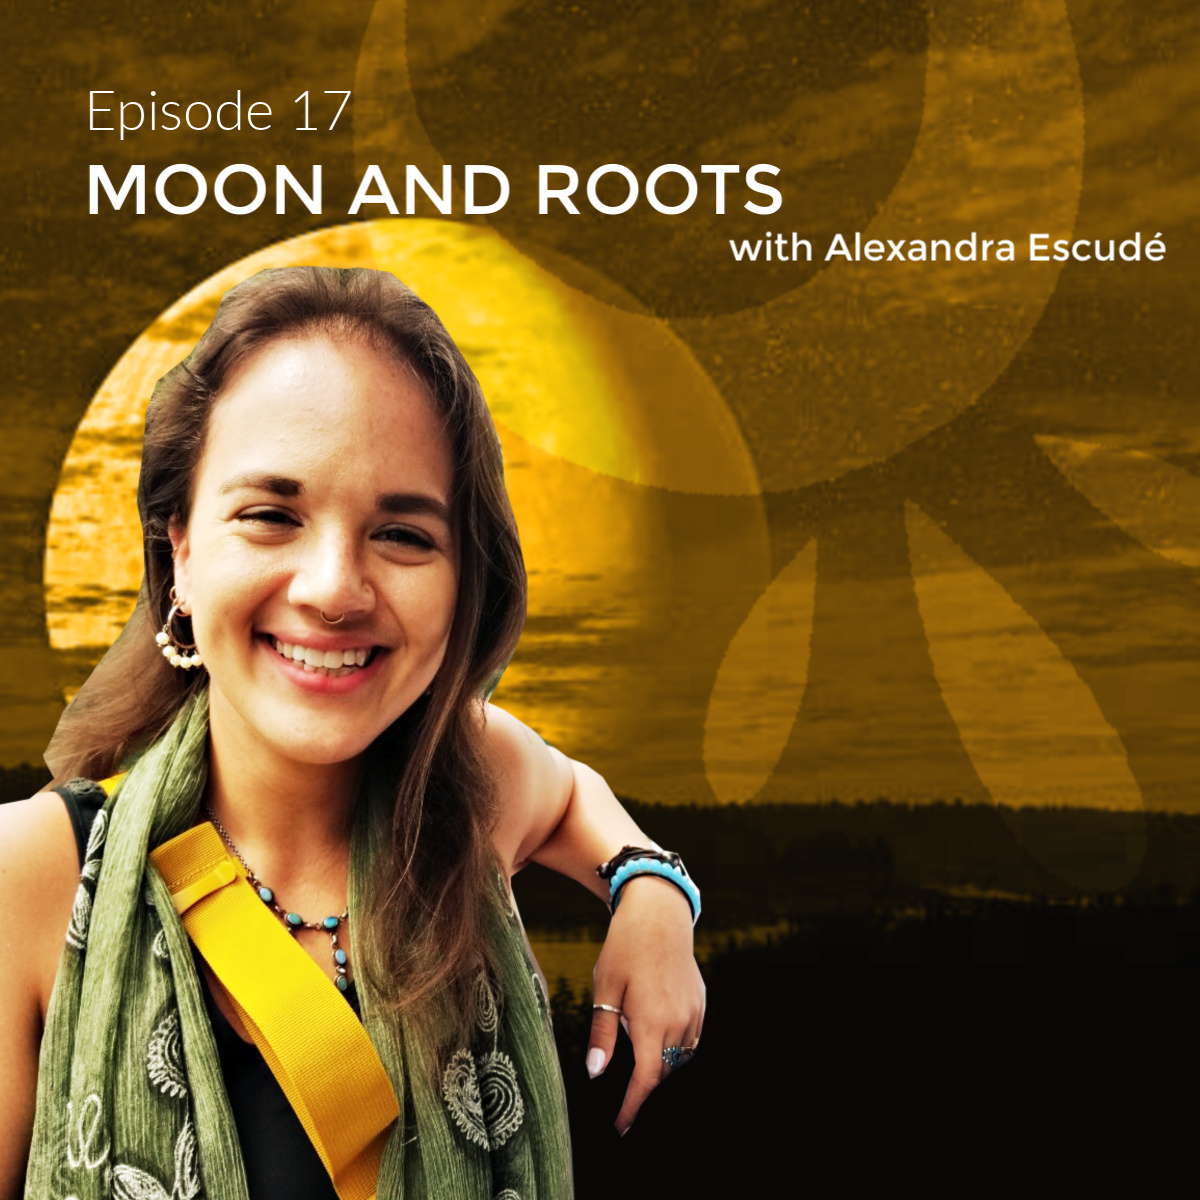 Moon and Roots with Alexandra Escudé